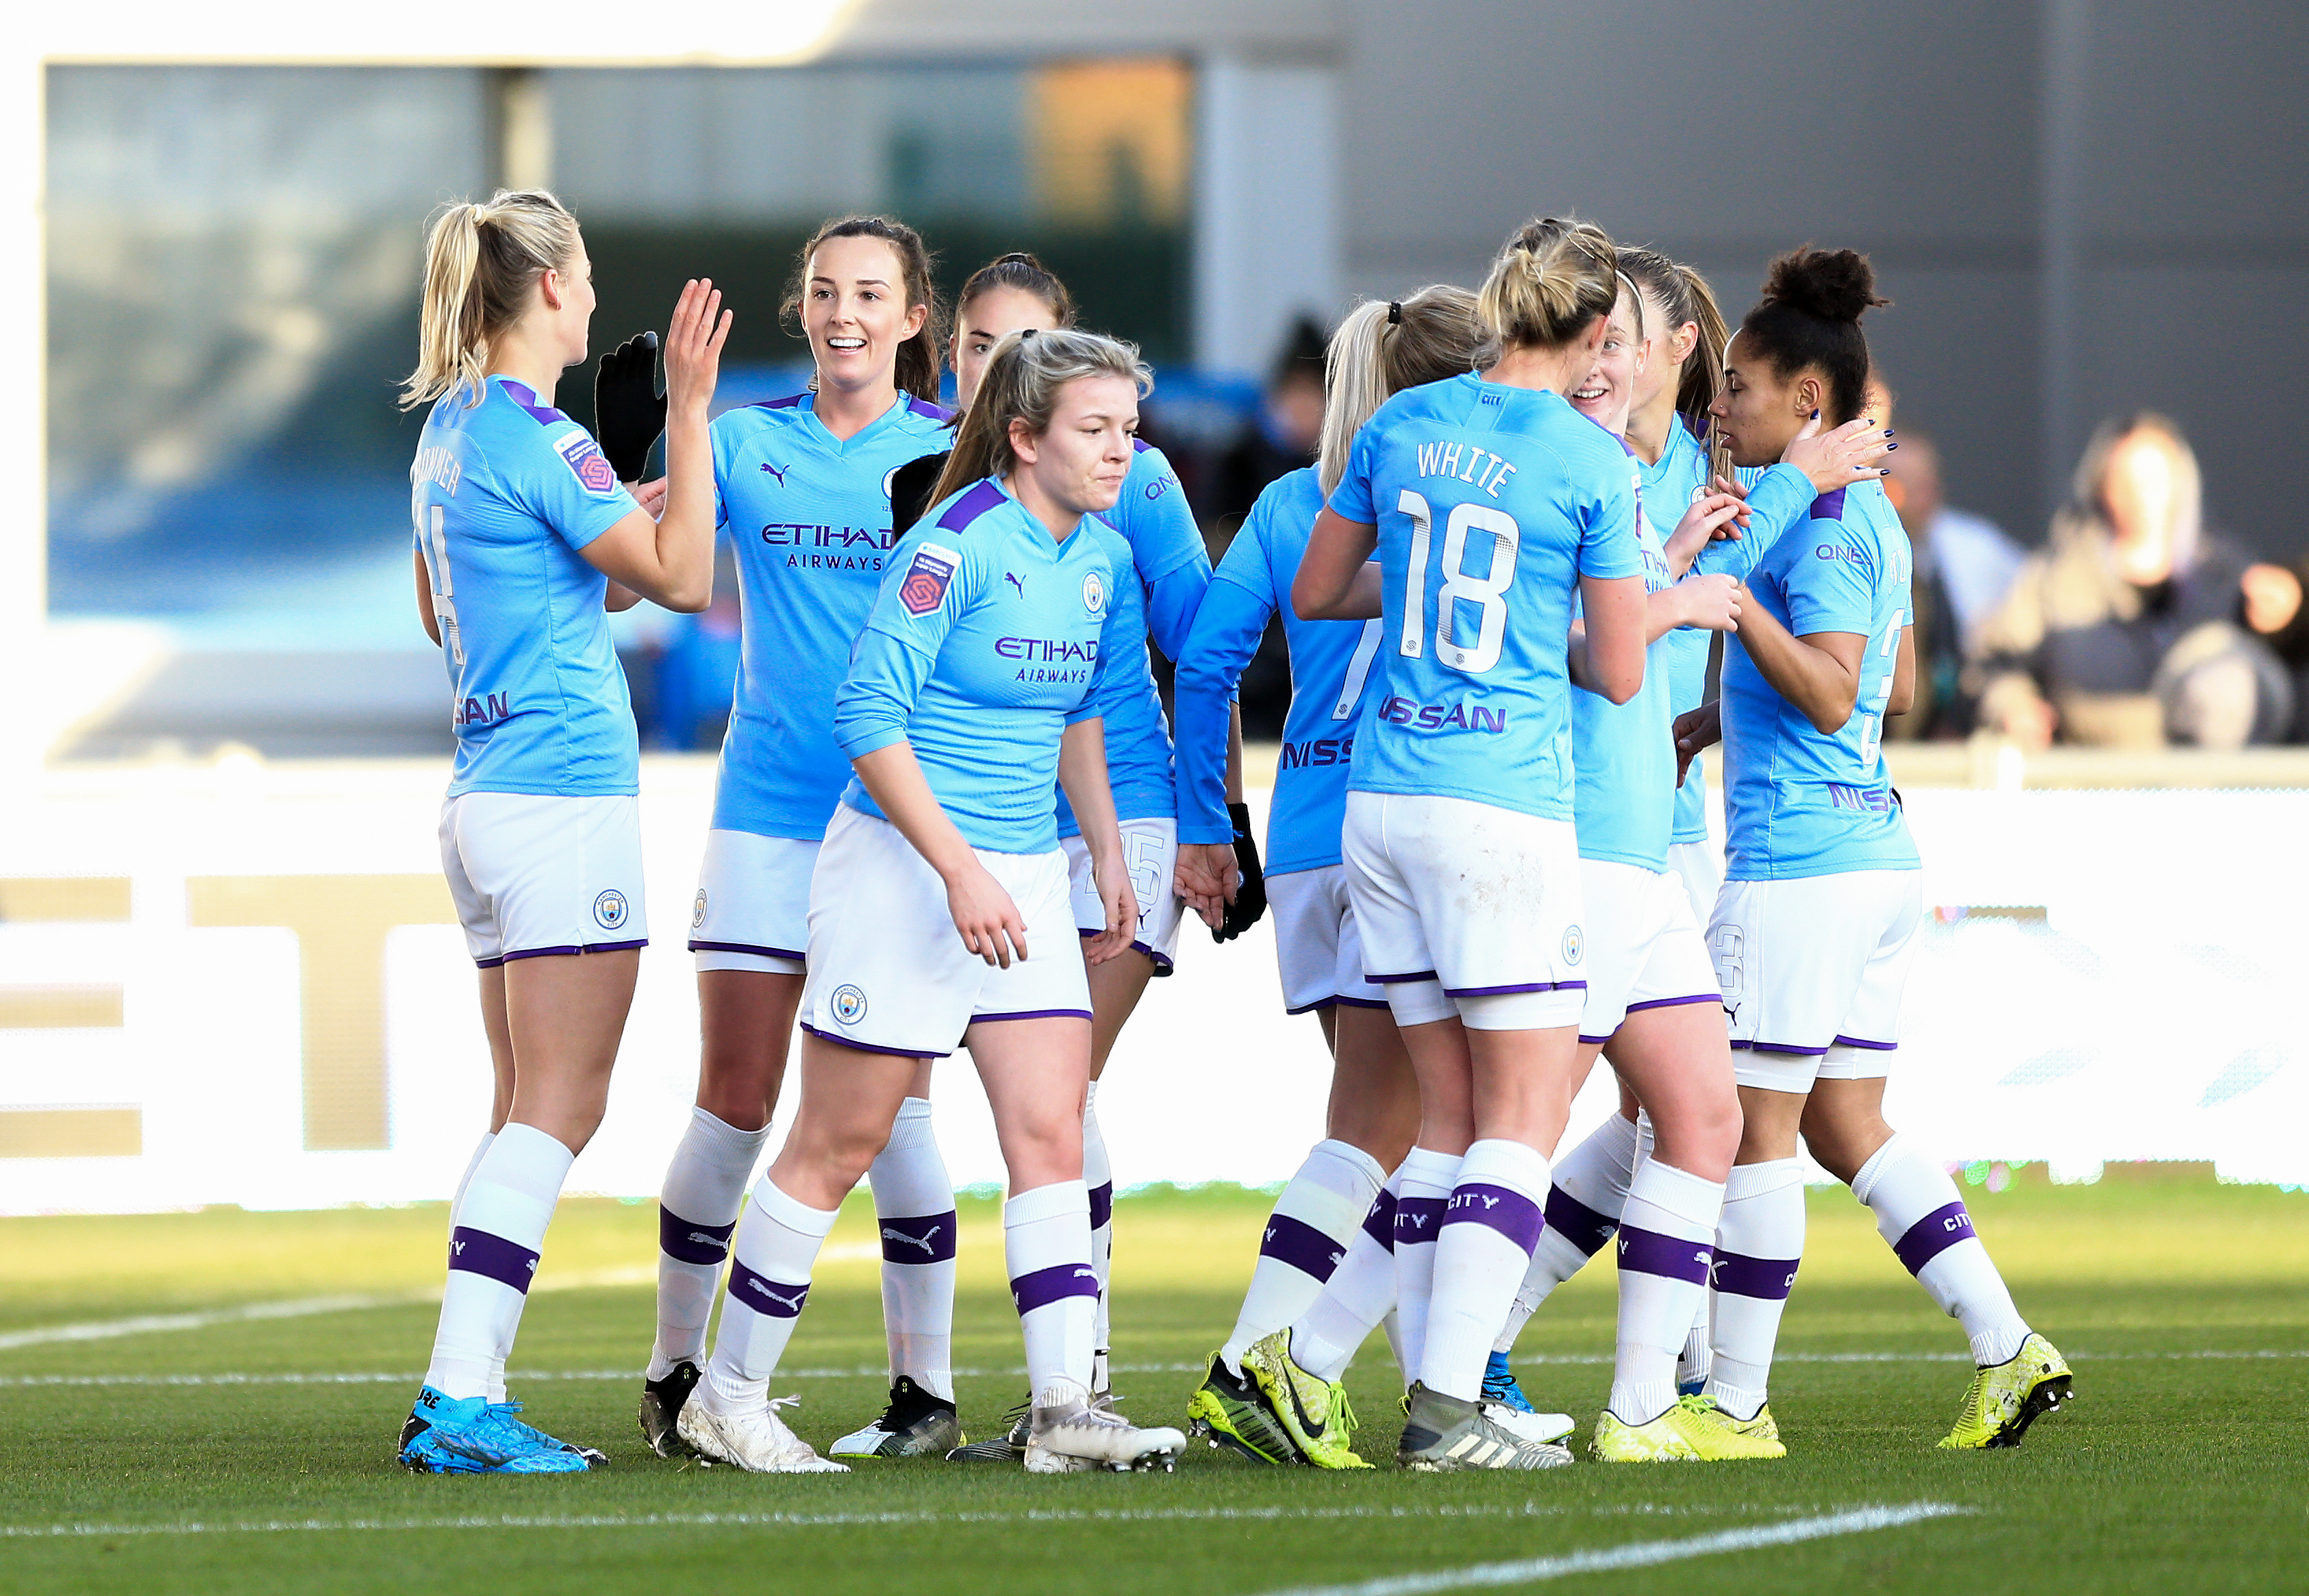 Liverpool v City: Continental Cup match preview